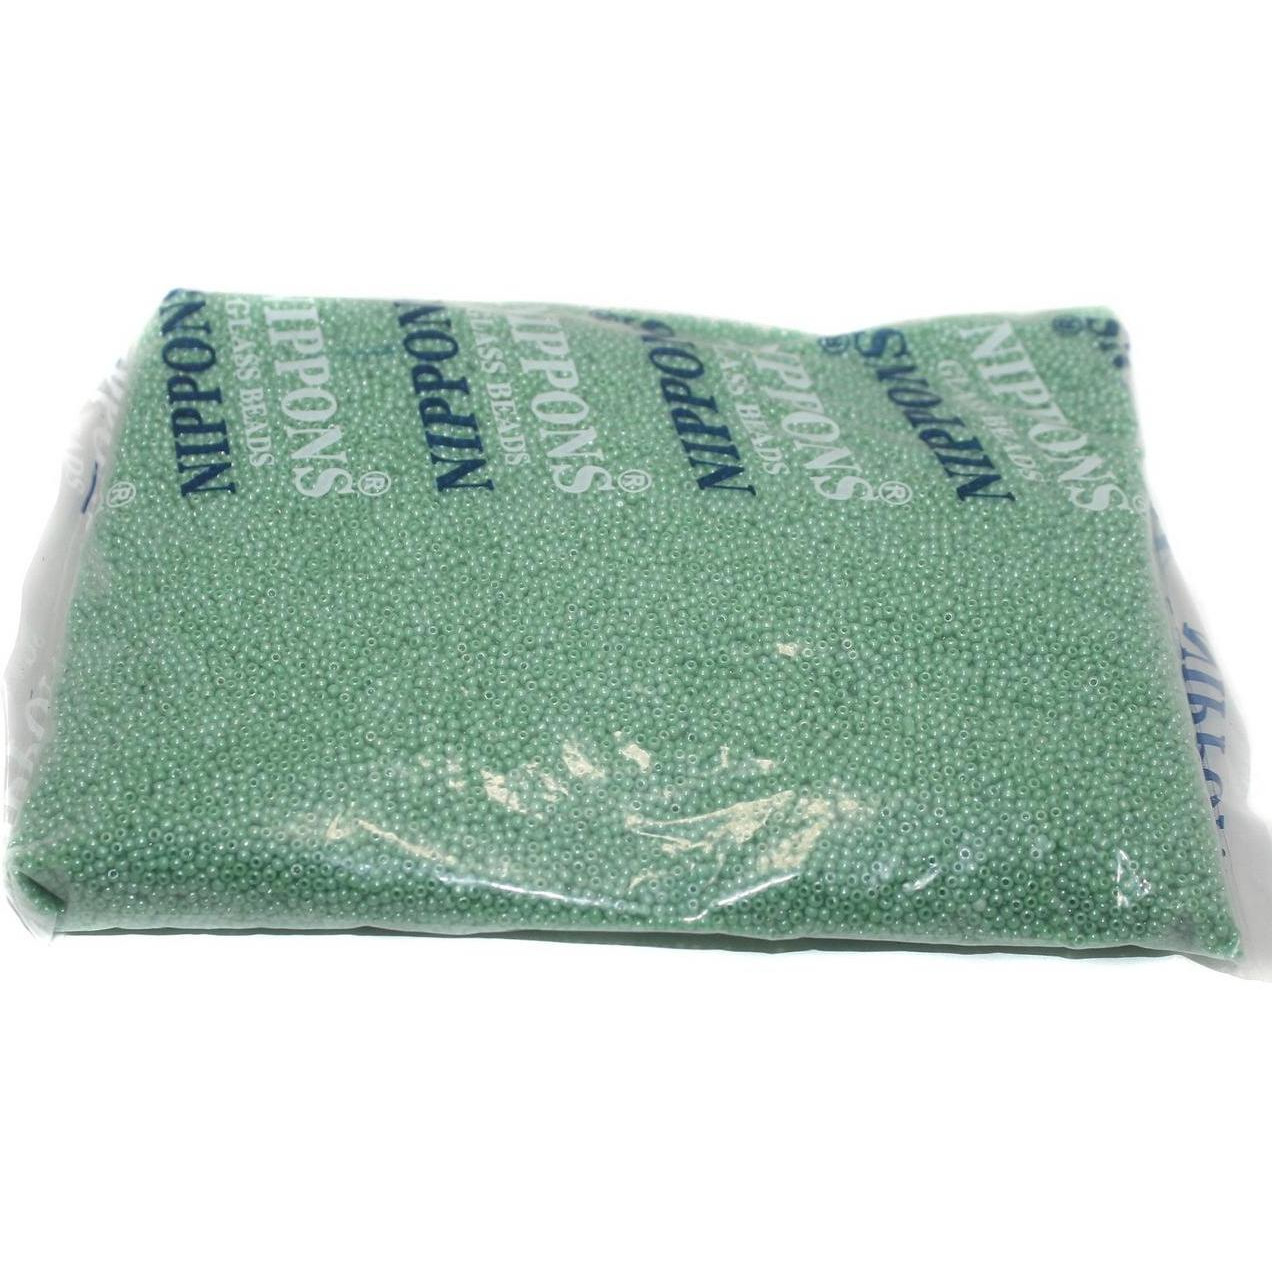 Beadsnfashion Jewellery, Embroidery & Crafts Nippon Seed Beads Ligh Green Opaque Luster 11/0, Pack OF 500 Gm